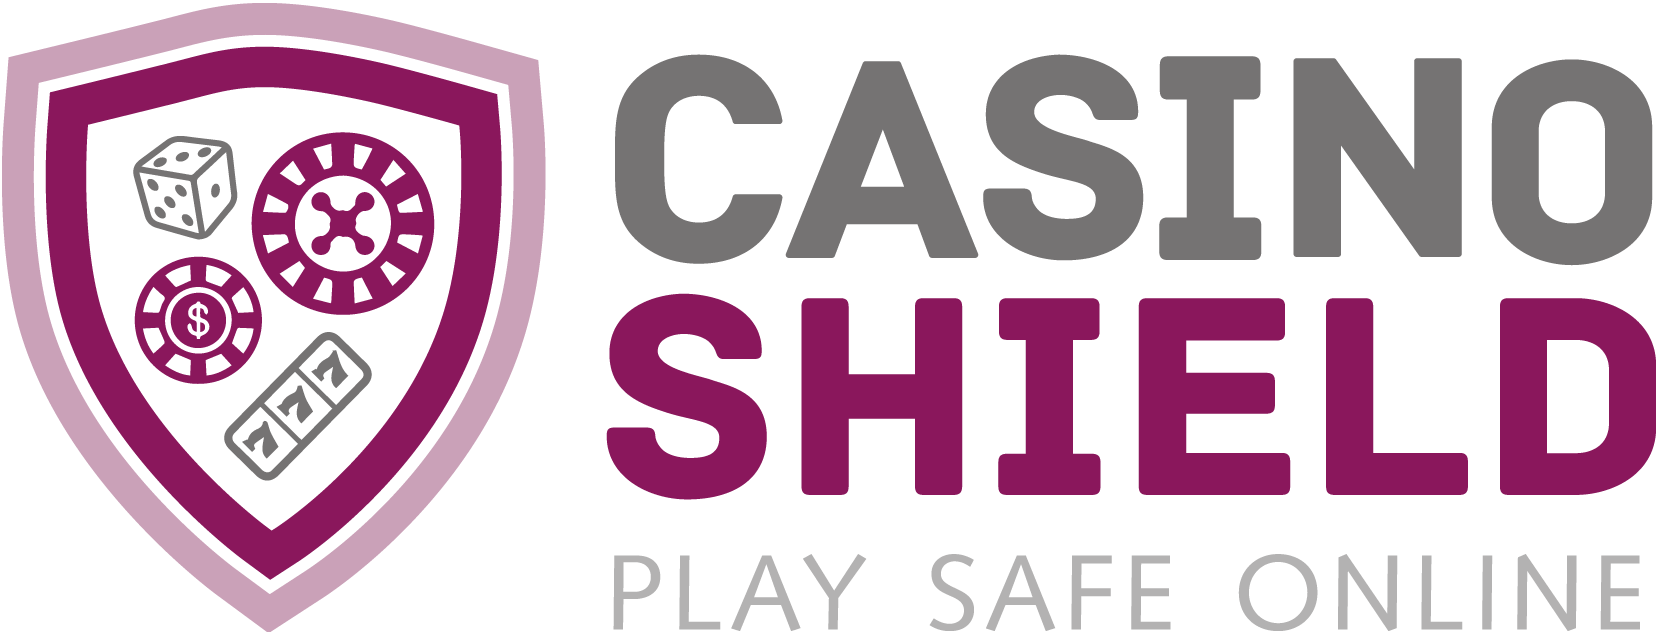 Casino Shield logo